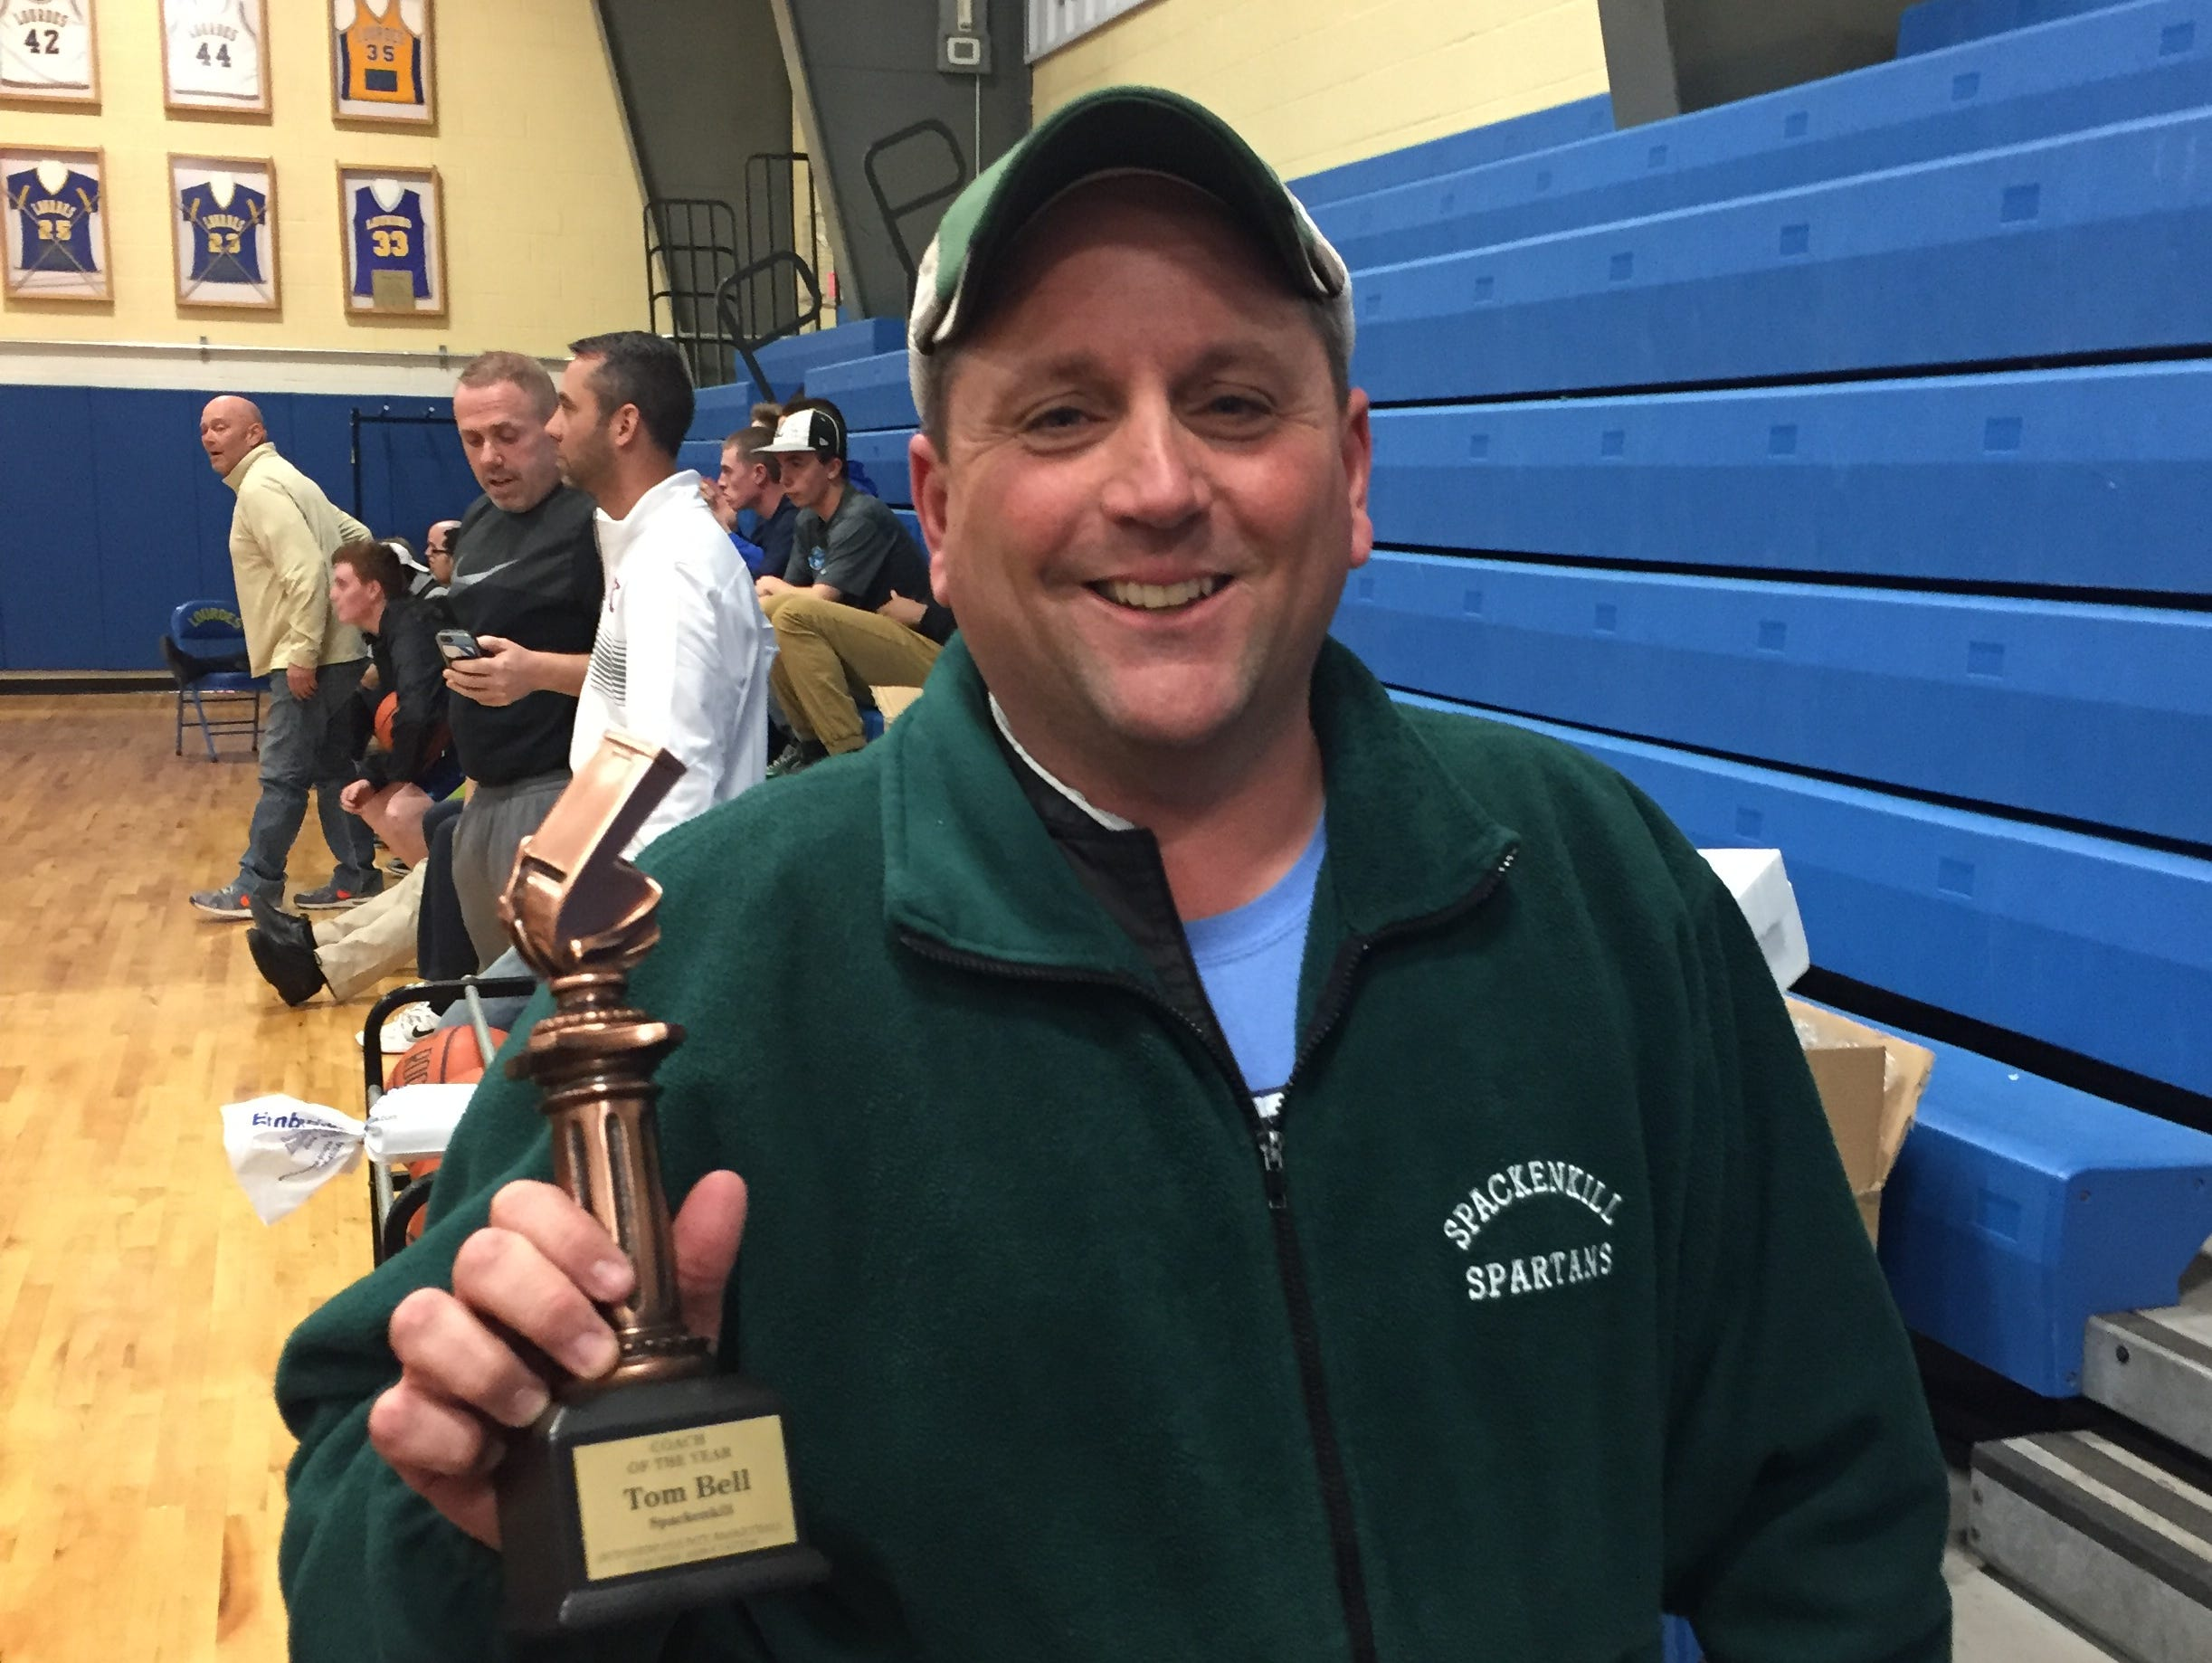 Spackenkill's Tom Bell was named Coach of the Year by the Dutchess County Basketball Coaches Association on Monday at the Exceptional Senior game at Our Lady of Lourdes High School.